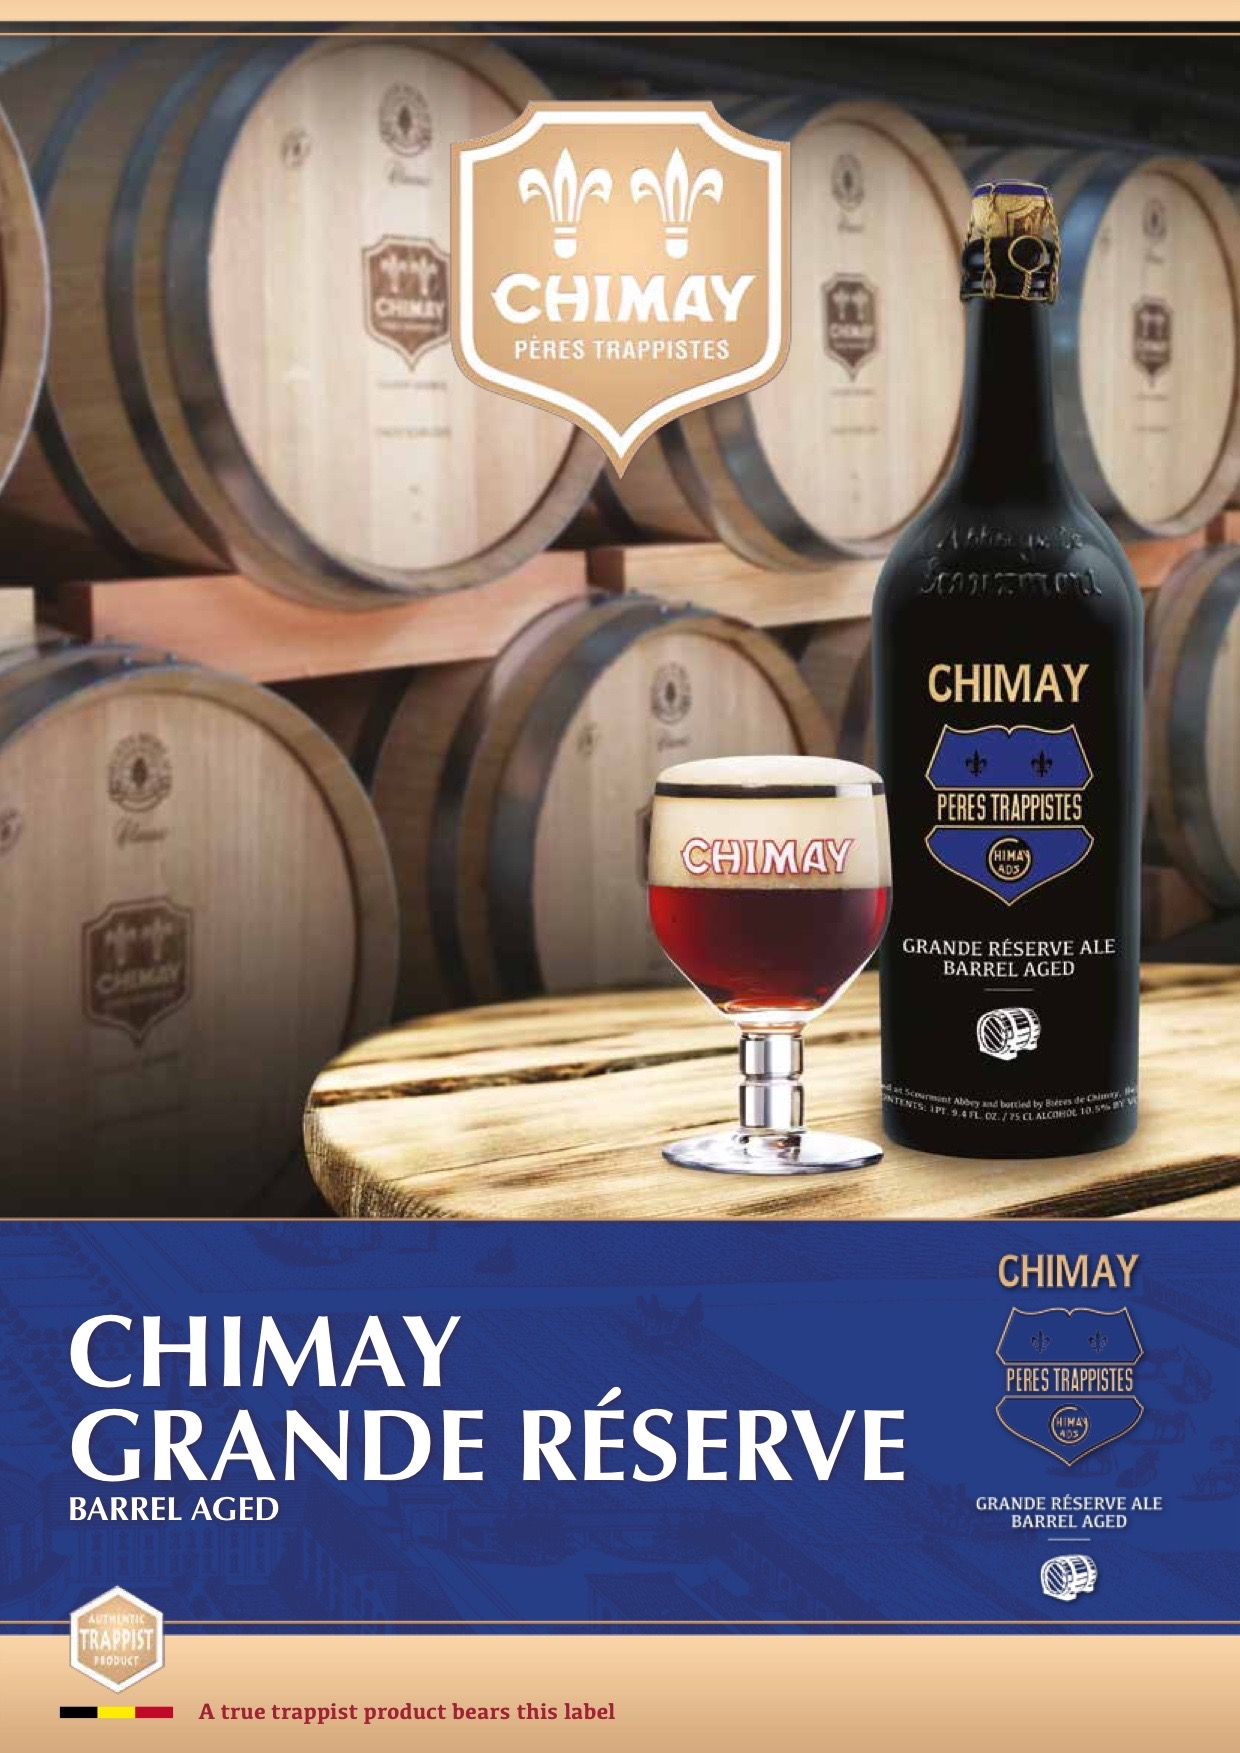 Chimay Grand Reserve